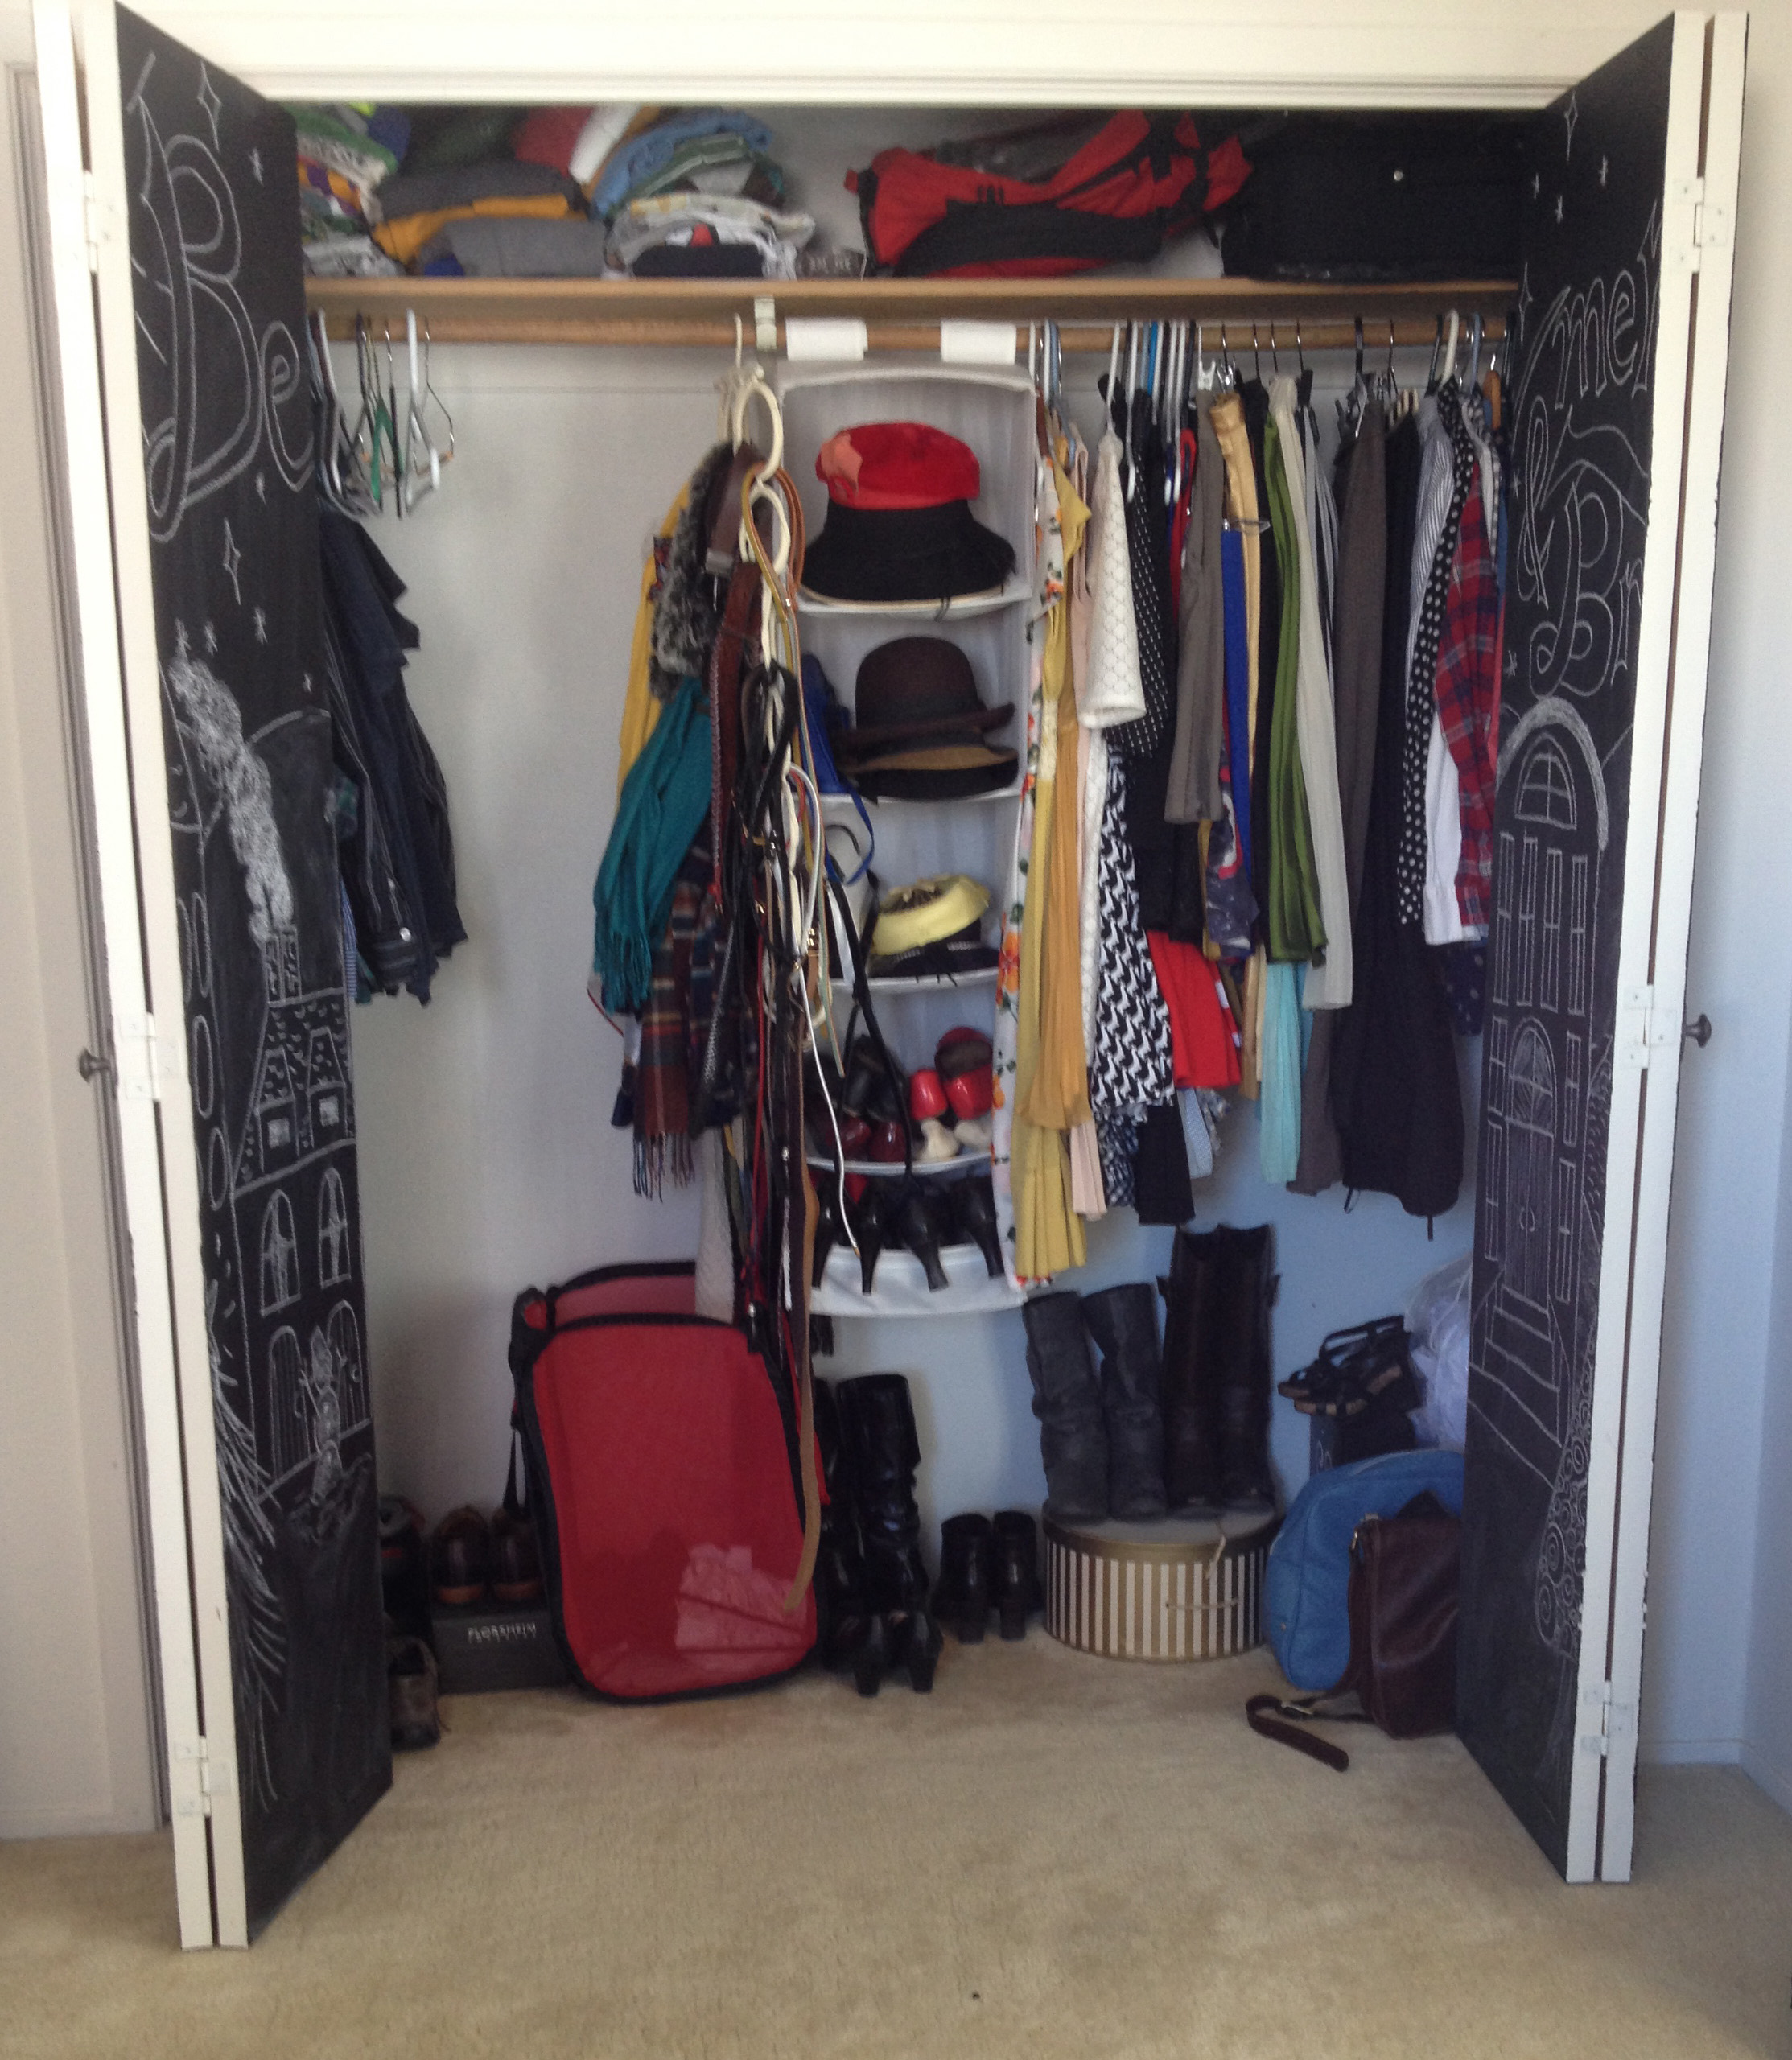 closet, wardrobe, organization, tour, clothing, hanging shelf, boots, shoes, bags, hangers,